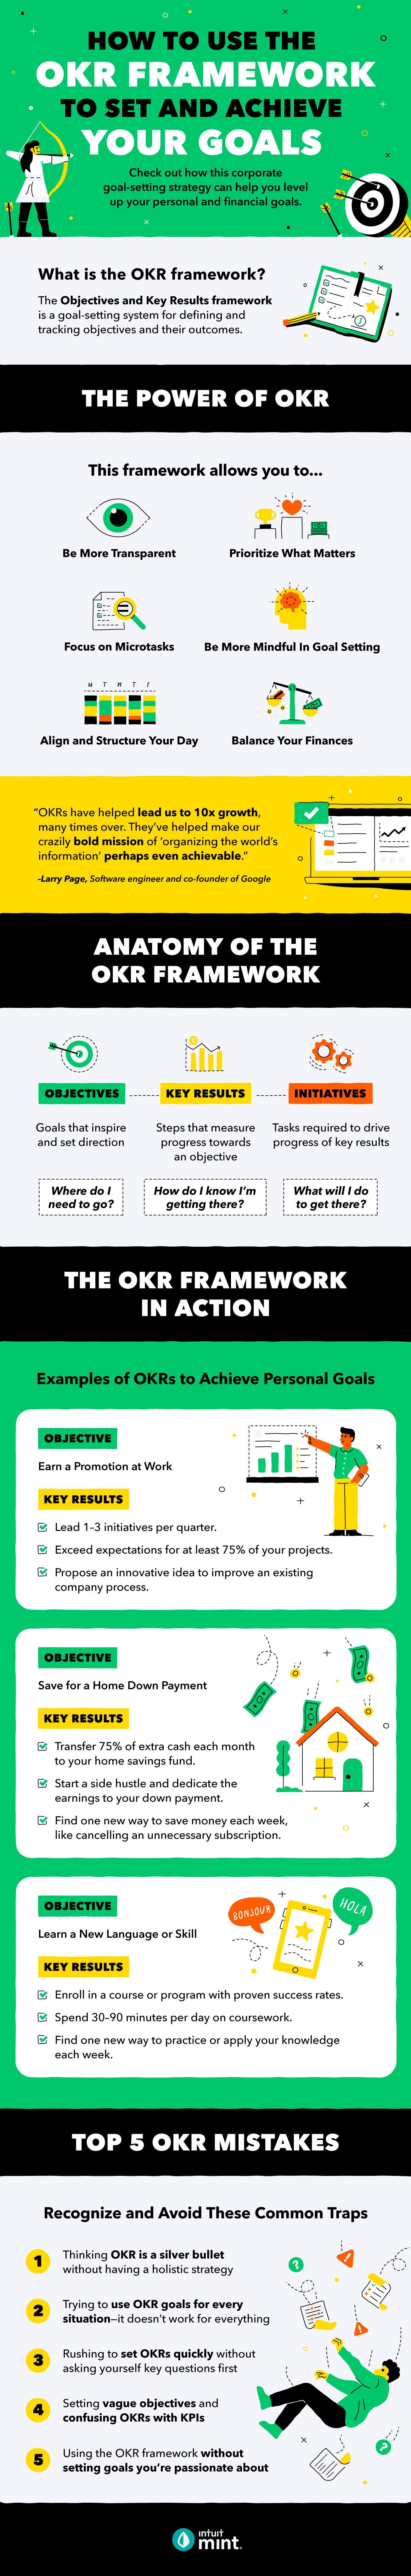 Using the OKR framework to set and achieve your goals